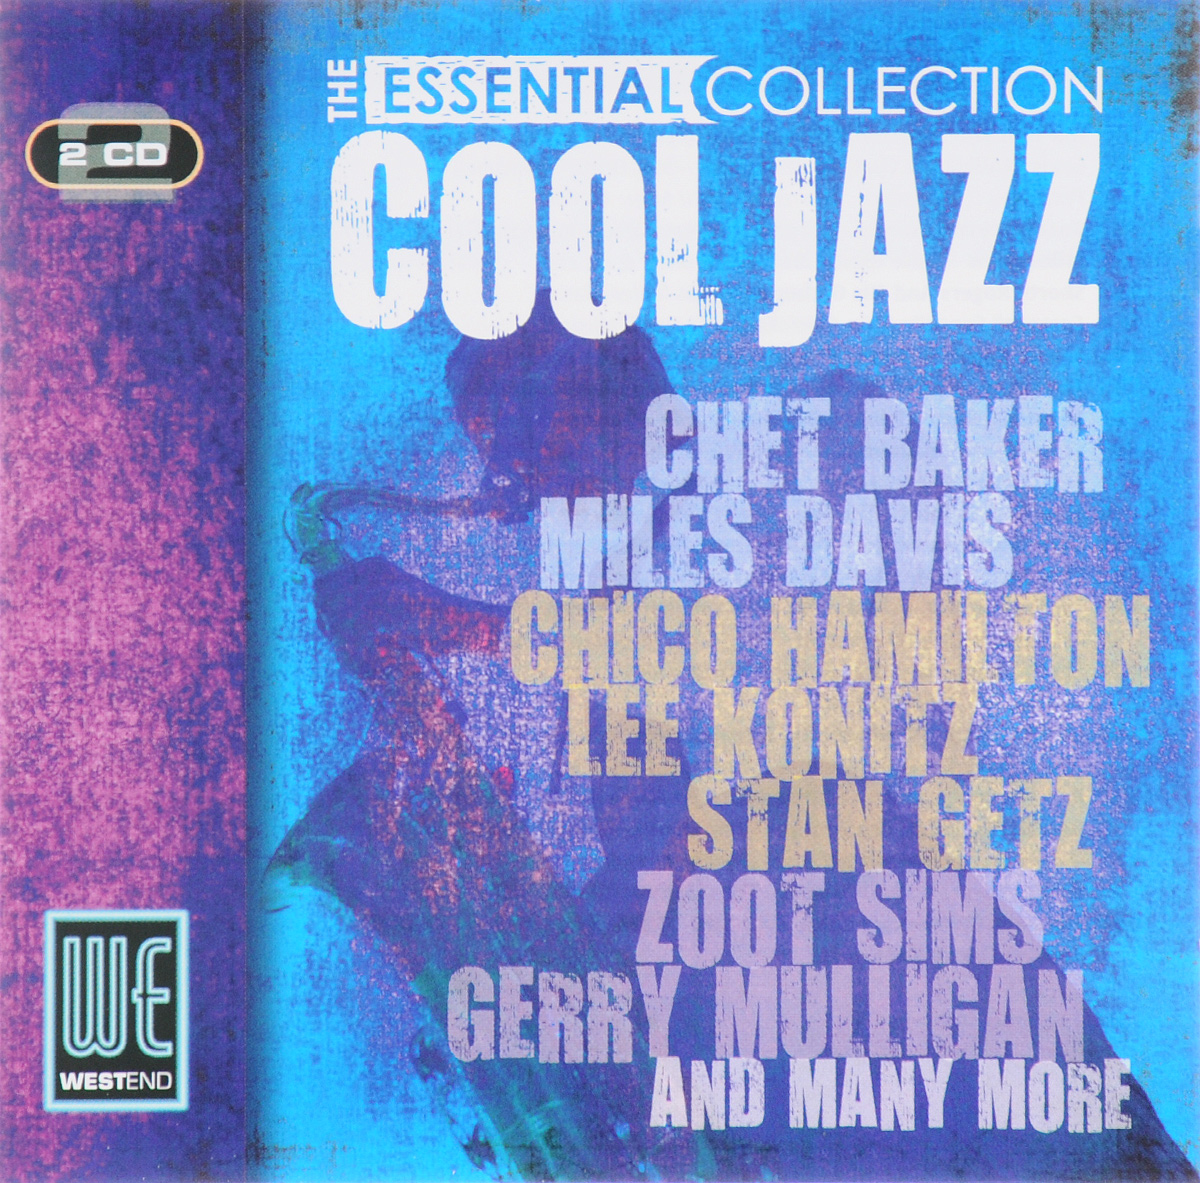 Jim Hall Trio,Chet Baker Quartet,Barney Kessel Quintet,Майлз Дэвис,Shorty Rogers and His Orchestra,Bill Perkins Quintet,Ли Кониц,The Dave Brubeck Quartet,Gerry Mulligan Quintet,Red Mitchell Sextet The Essential Collection. Cool Jazz (2 CD) collins essential chinese dictionary